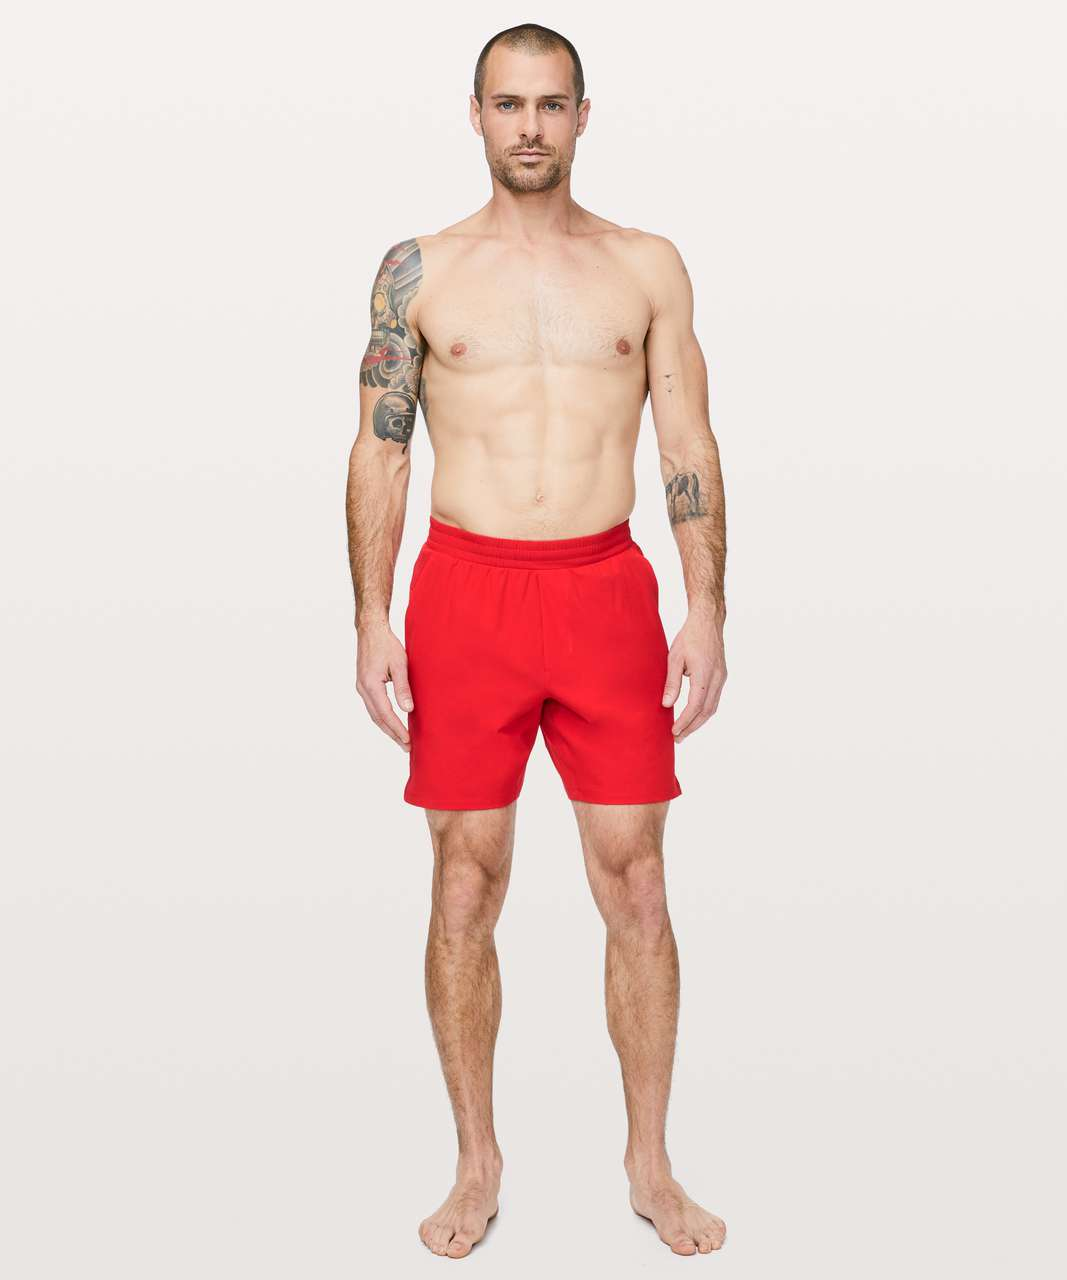 "Lululemon Channel Cross Swim Short *7"" - Spicy Red"